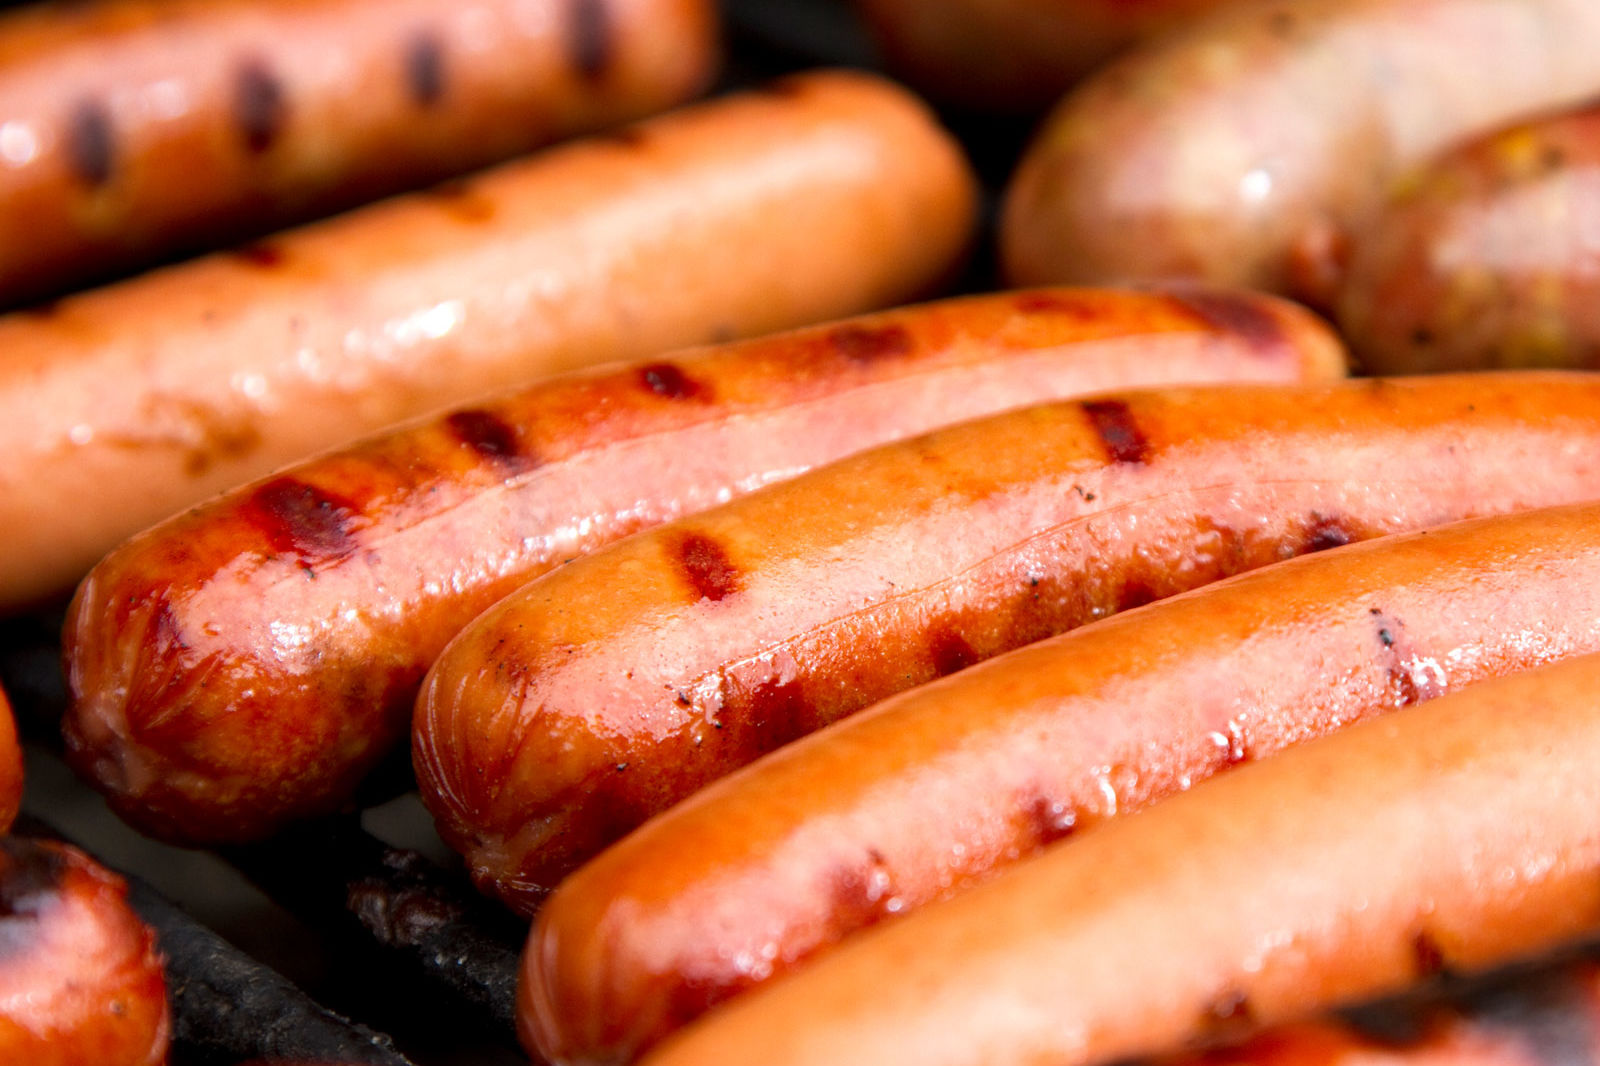 We Found a Hot Dog That Tastes Like Steak—Grilling Season Will Never Be the Same